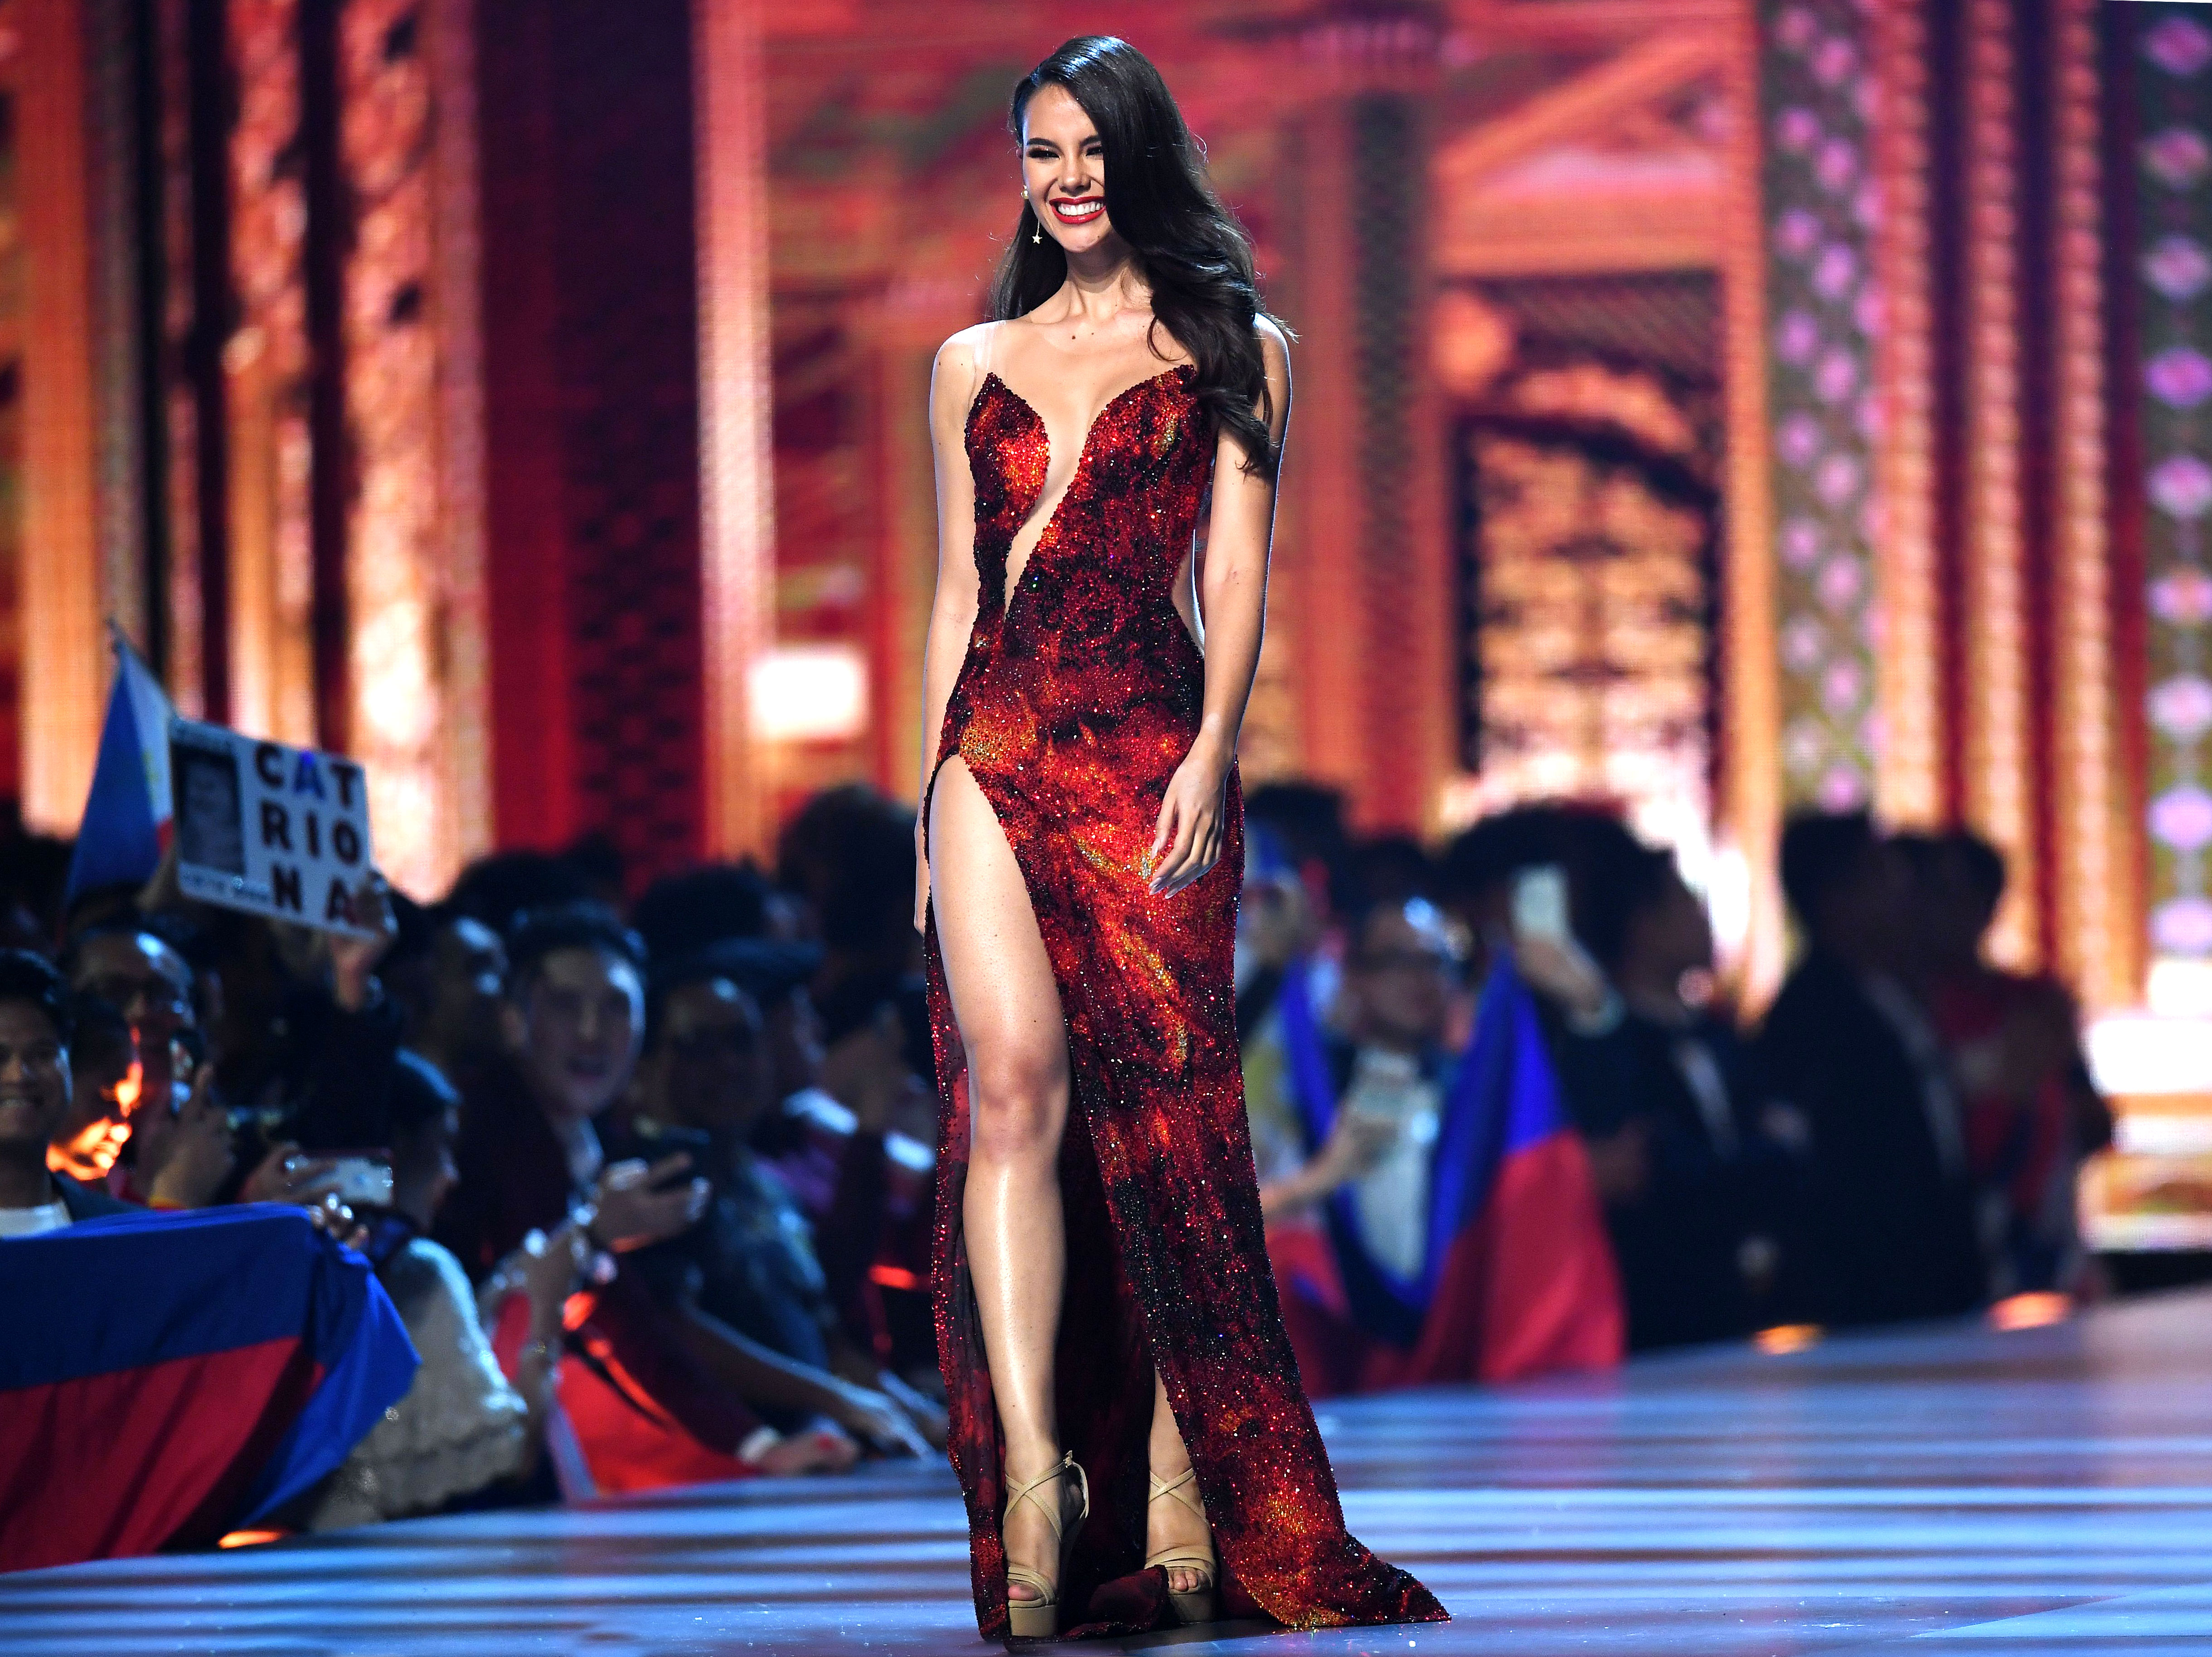 1-Miss-Philippines-Catriona-Gray-miss-universe - This year's winner wore a crimson colored cut-out gown.